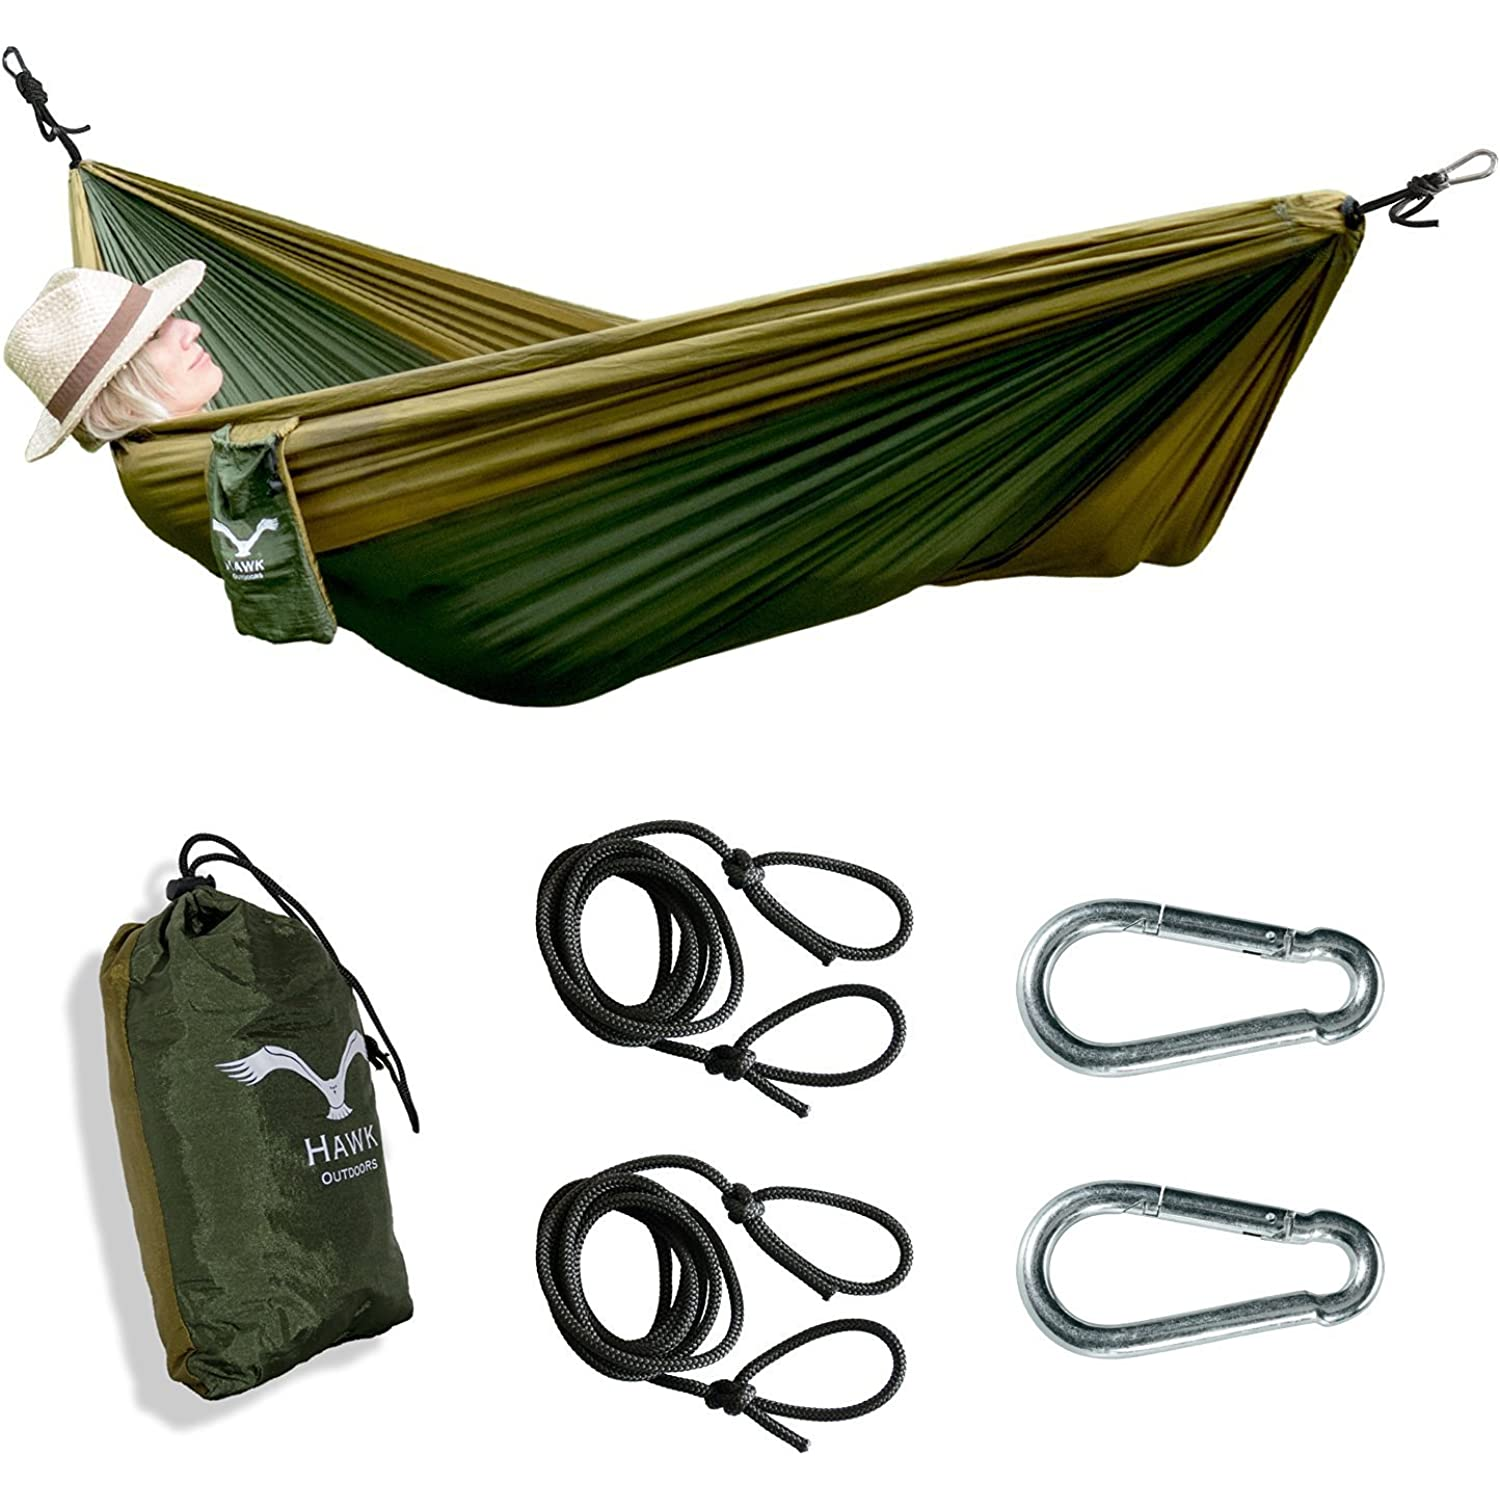 Hawk Outdoor Ultra-light